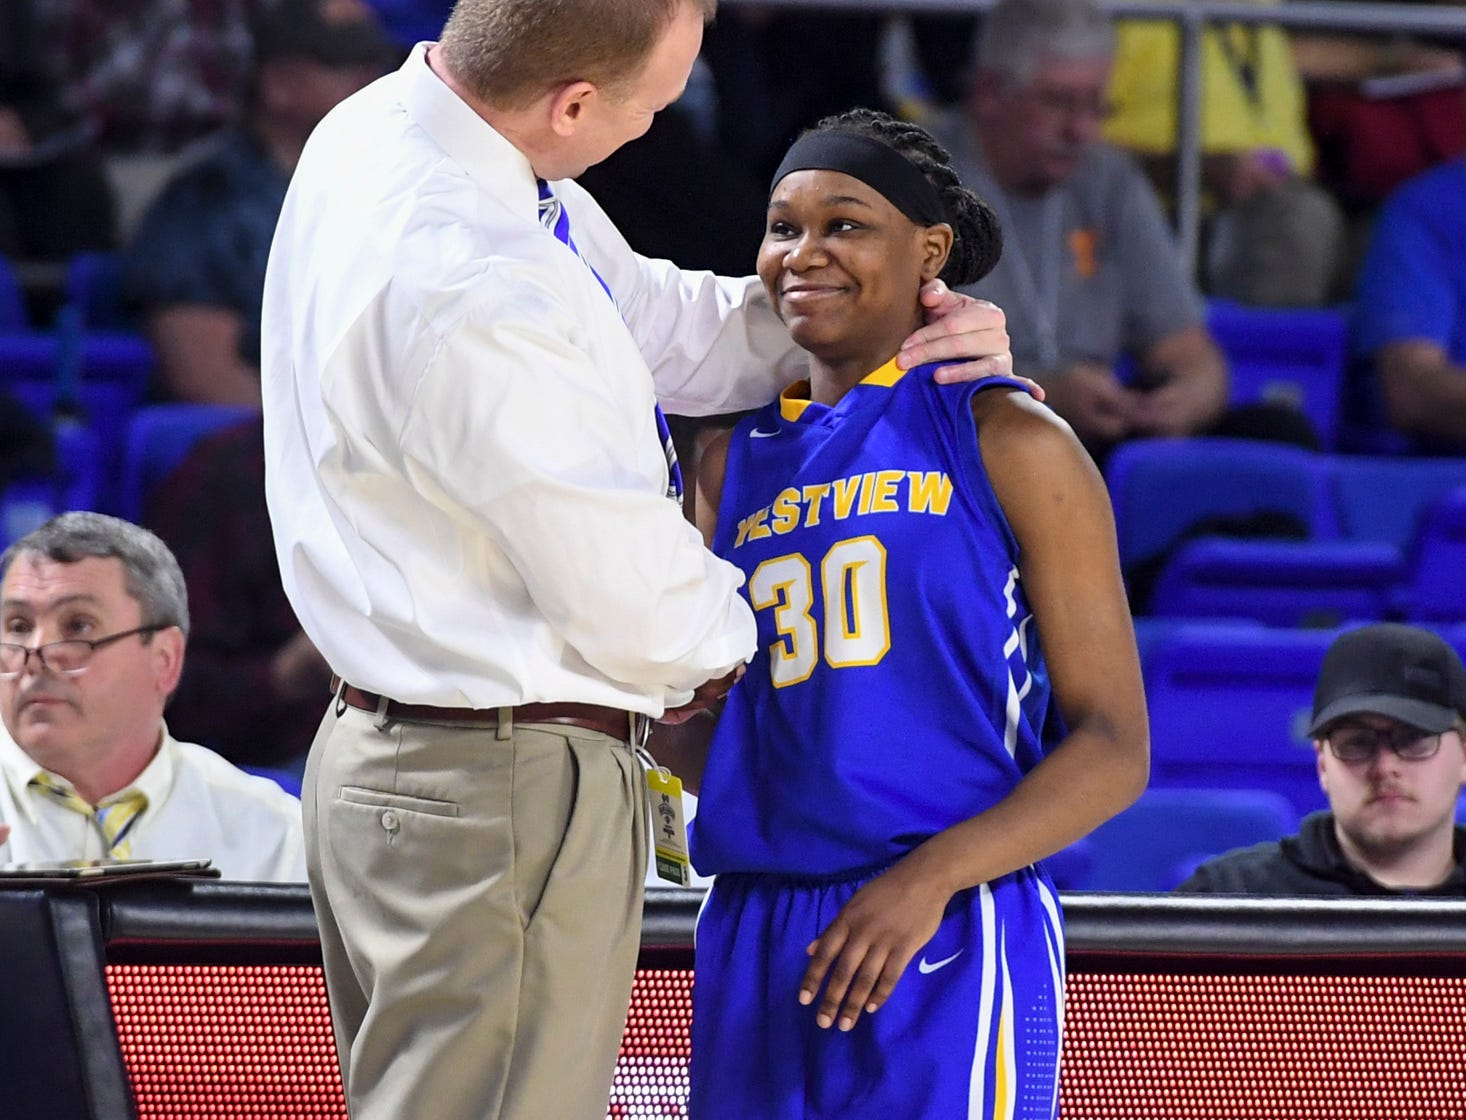 Westview's head coach Brian Haskins greets Westview's Tiara Yancey (30) as she heads to the bench after shooting free throws during their Class A semifinal game, Friday, March 8, 2019, in Murfreesboro. Westview defeated Marshall County, 46-37.